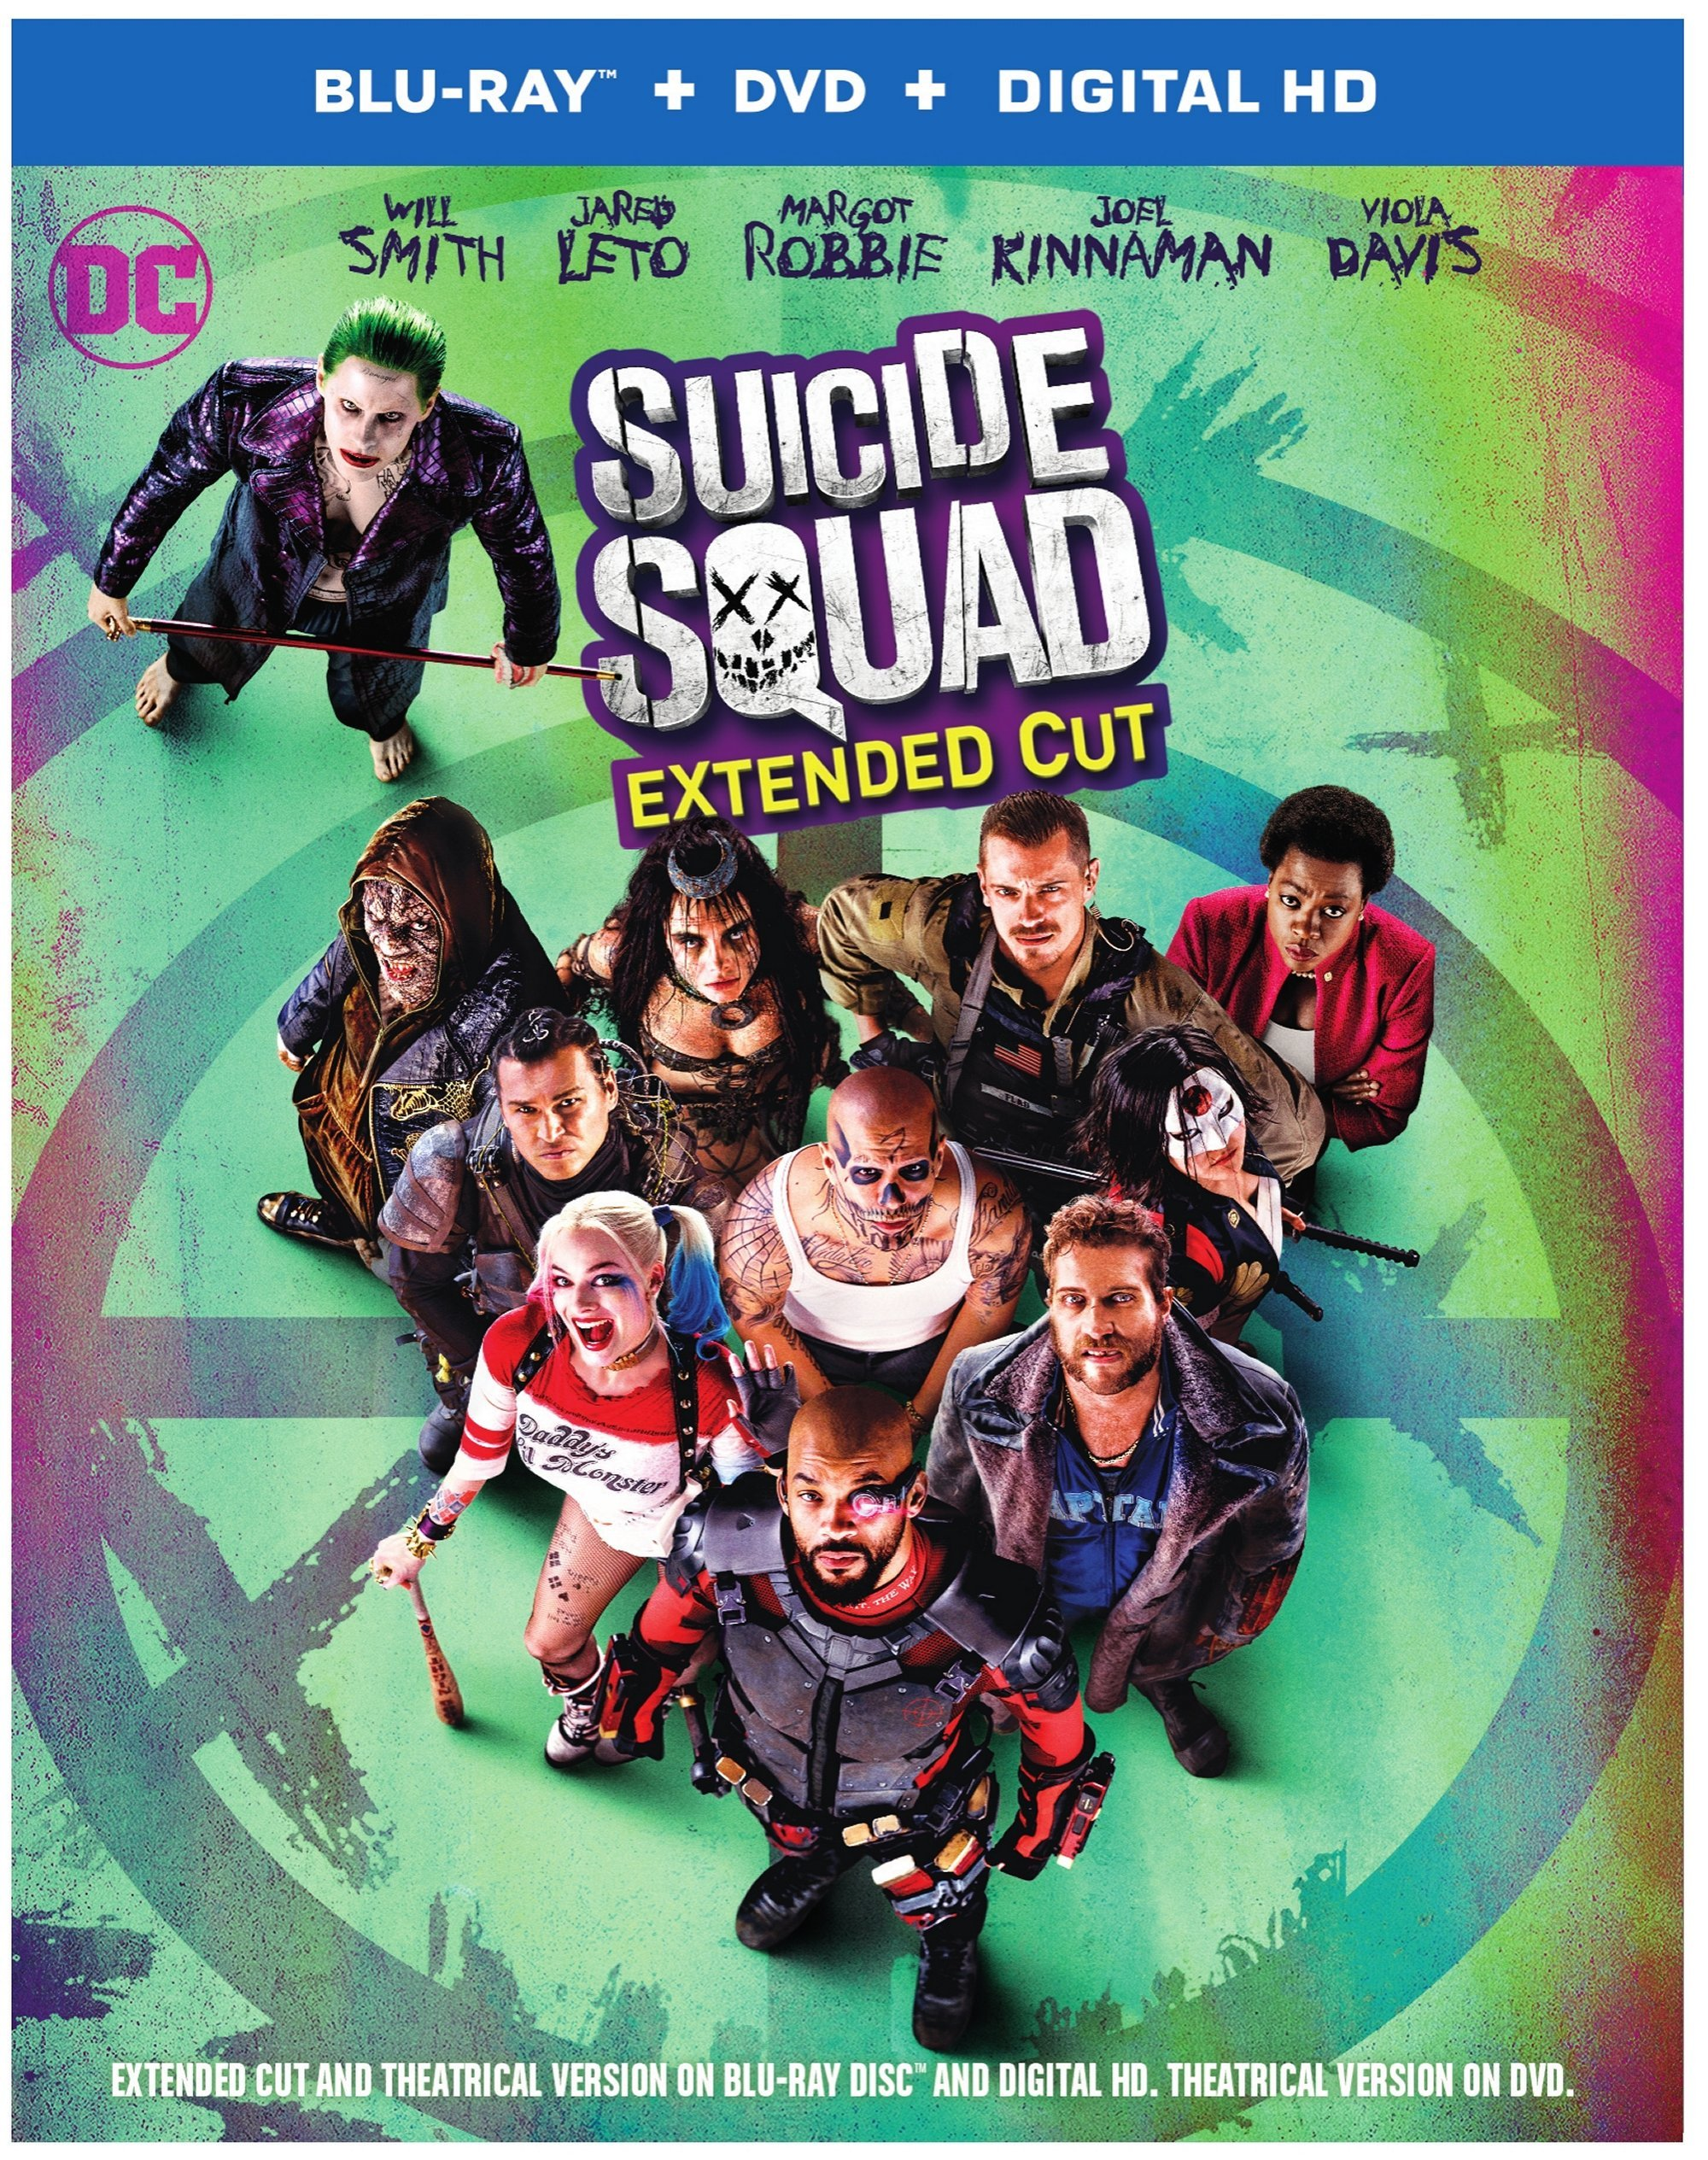 Buy Suicide Squad Extended Cut Now!